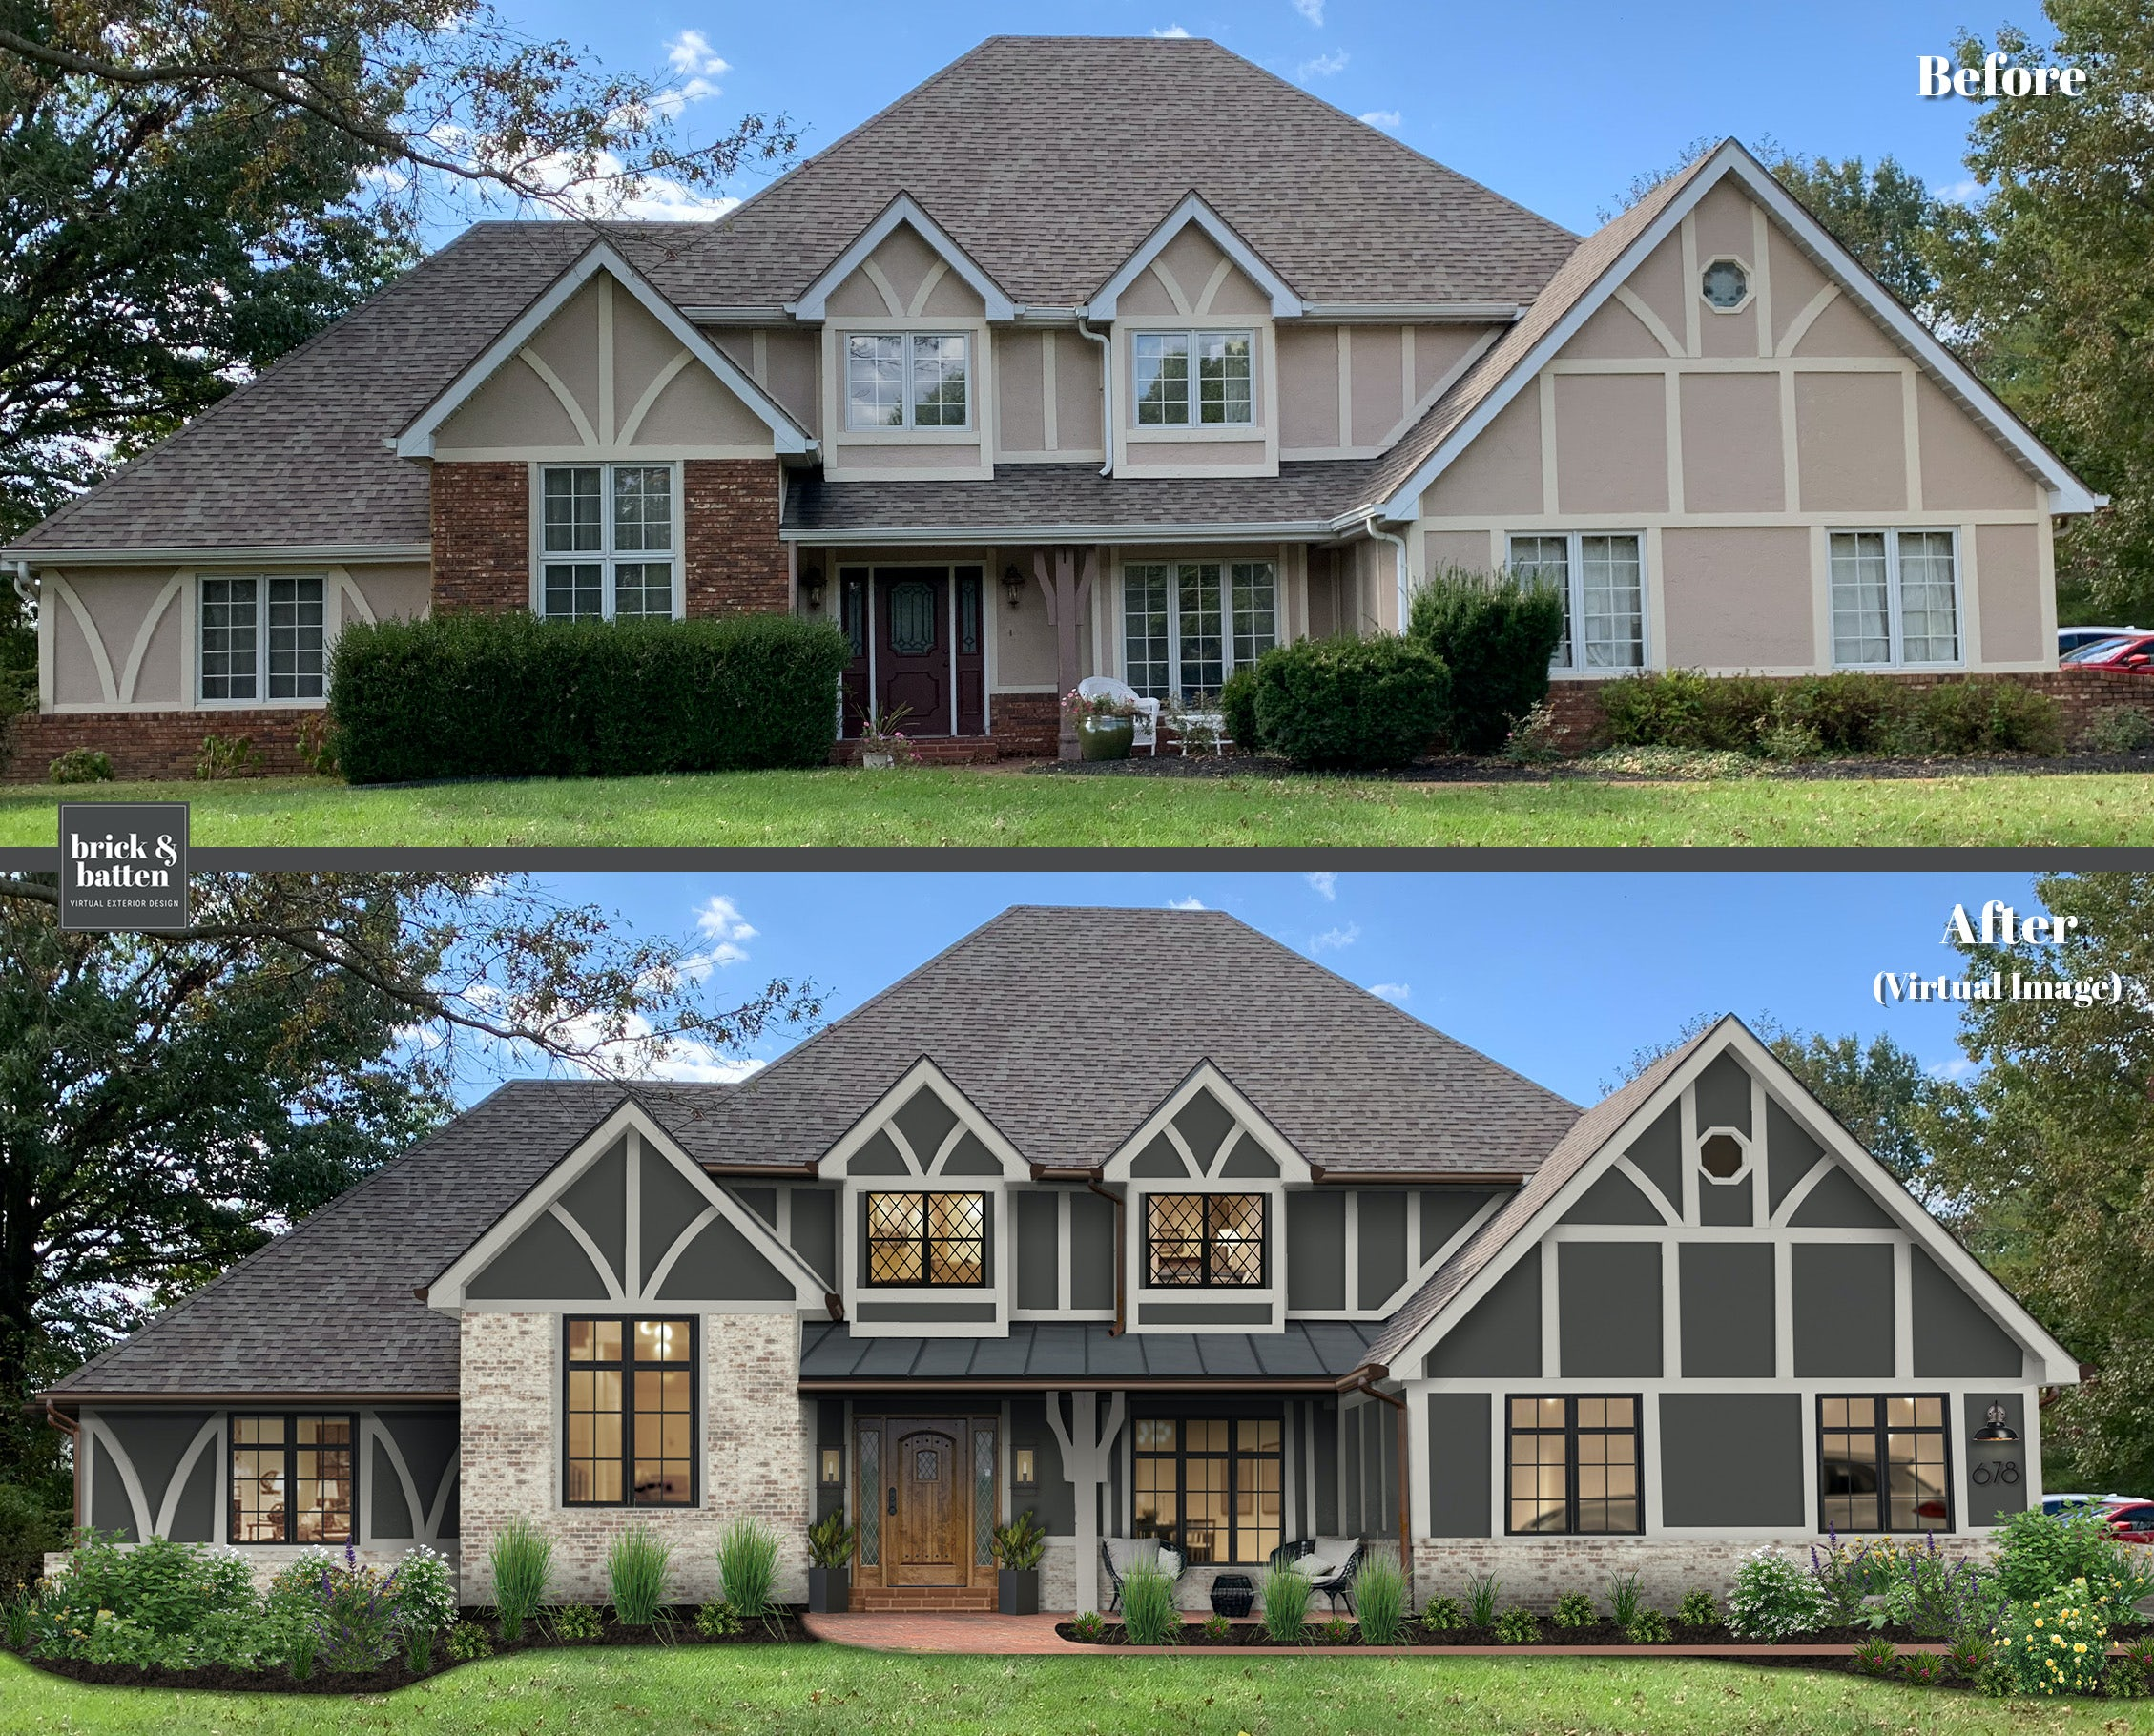 Before and after of a home painted gray